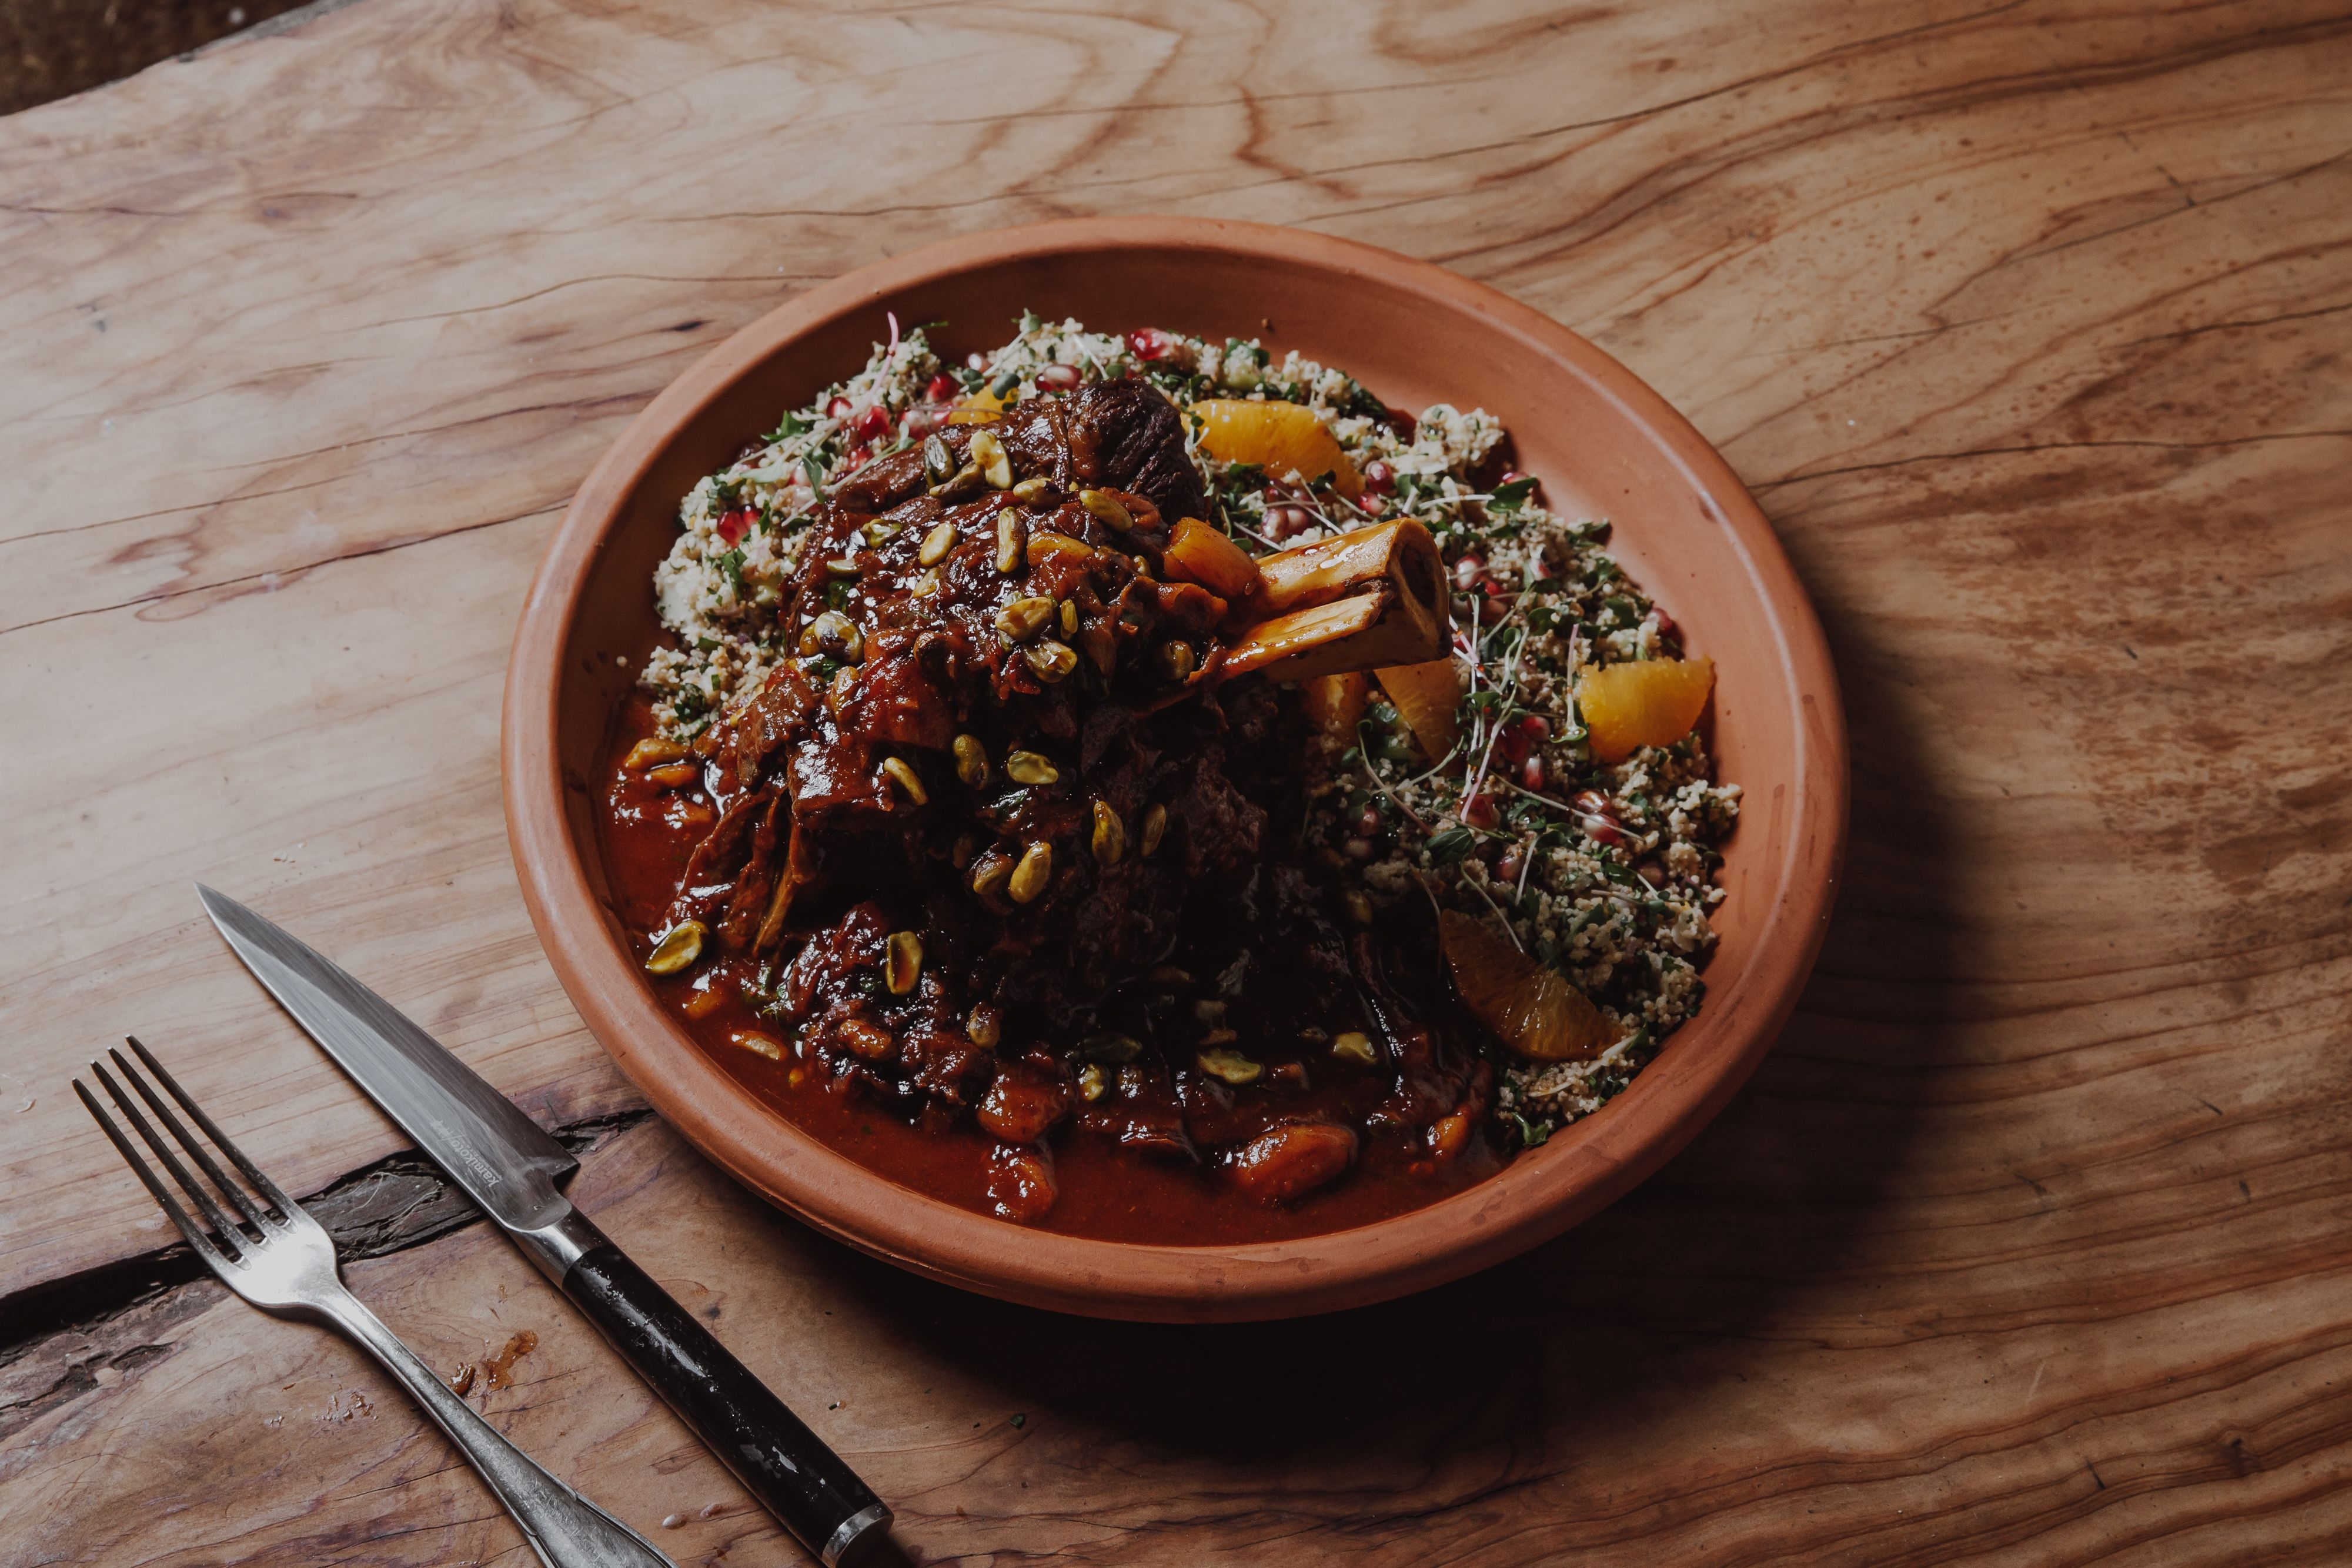 Shank Tagine with Pomegranate Cous Cous on plate